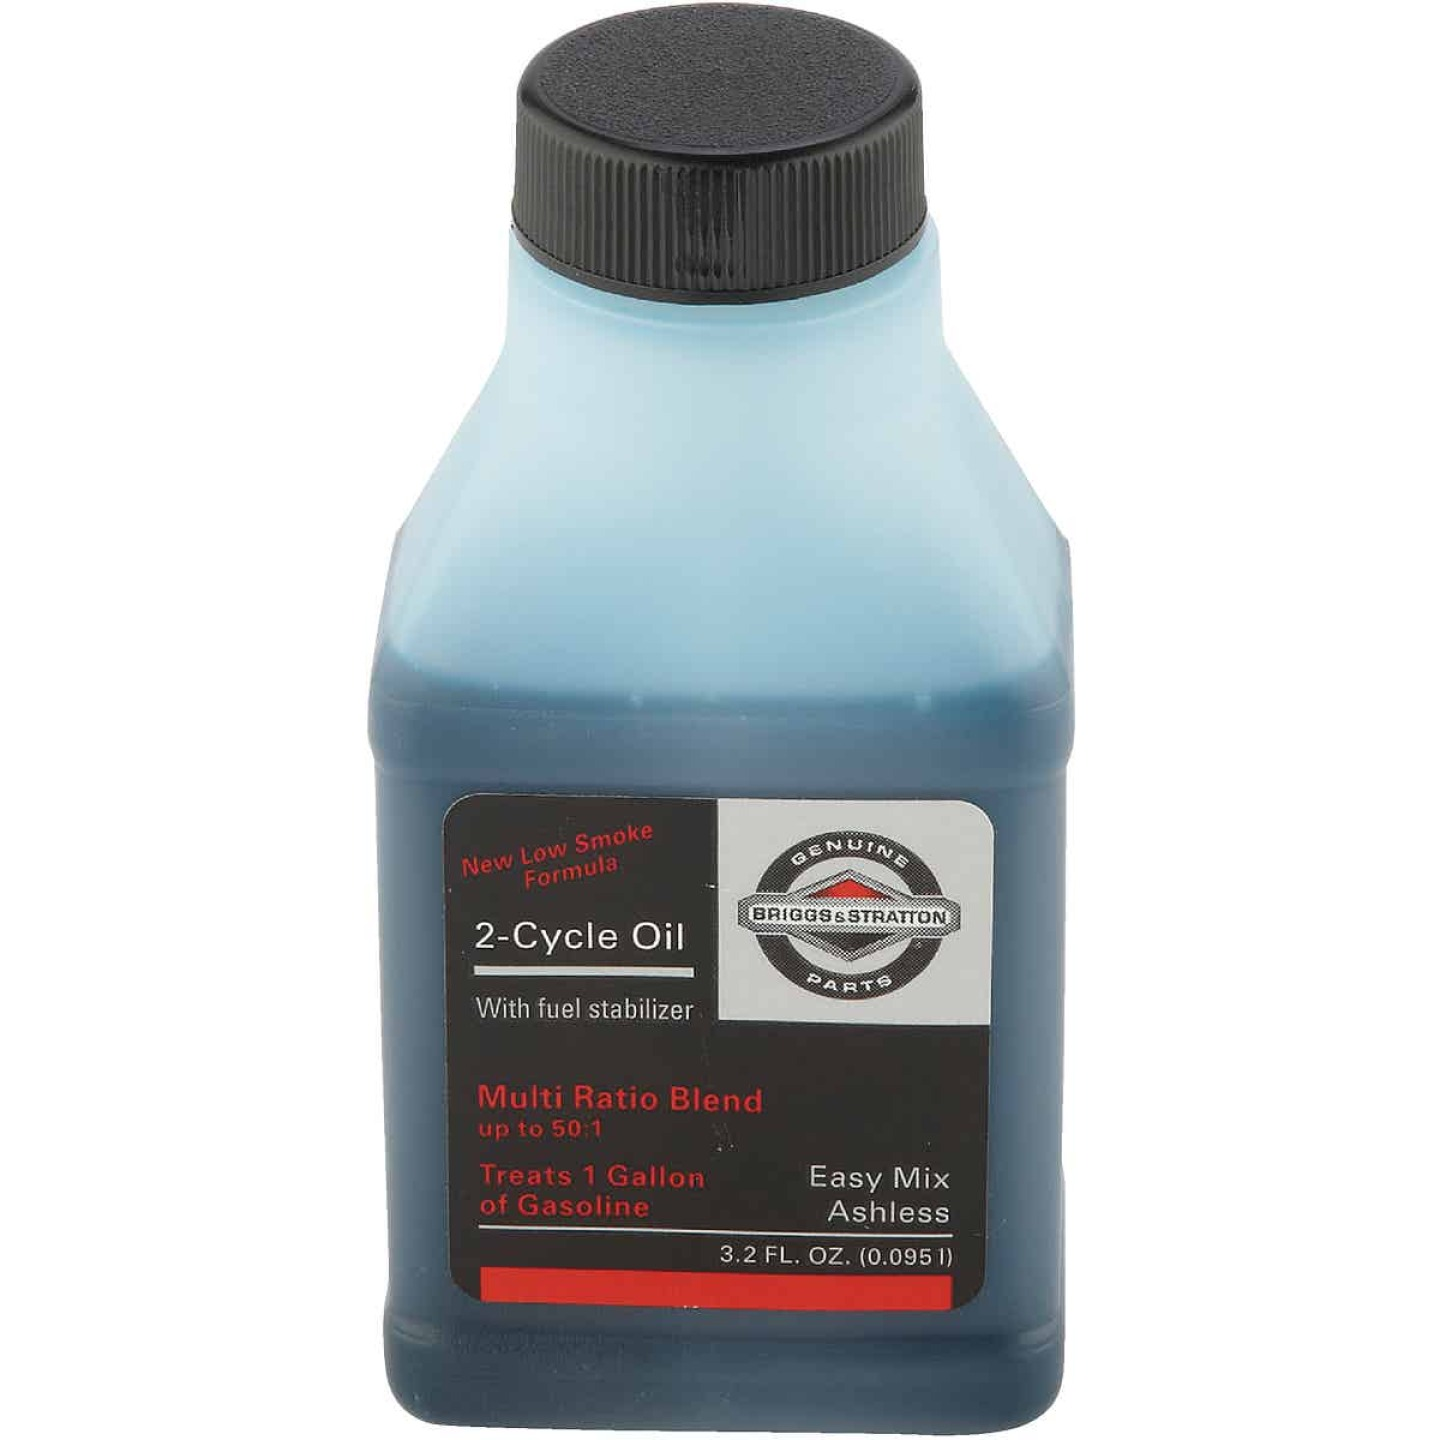 Briggs & Stratton 3.2 Oz. Air Cooled 2-Cycle Motor Oil Image 1